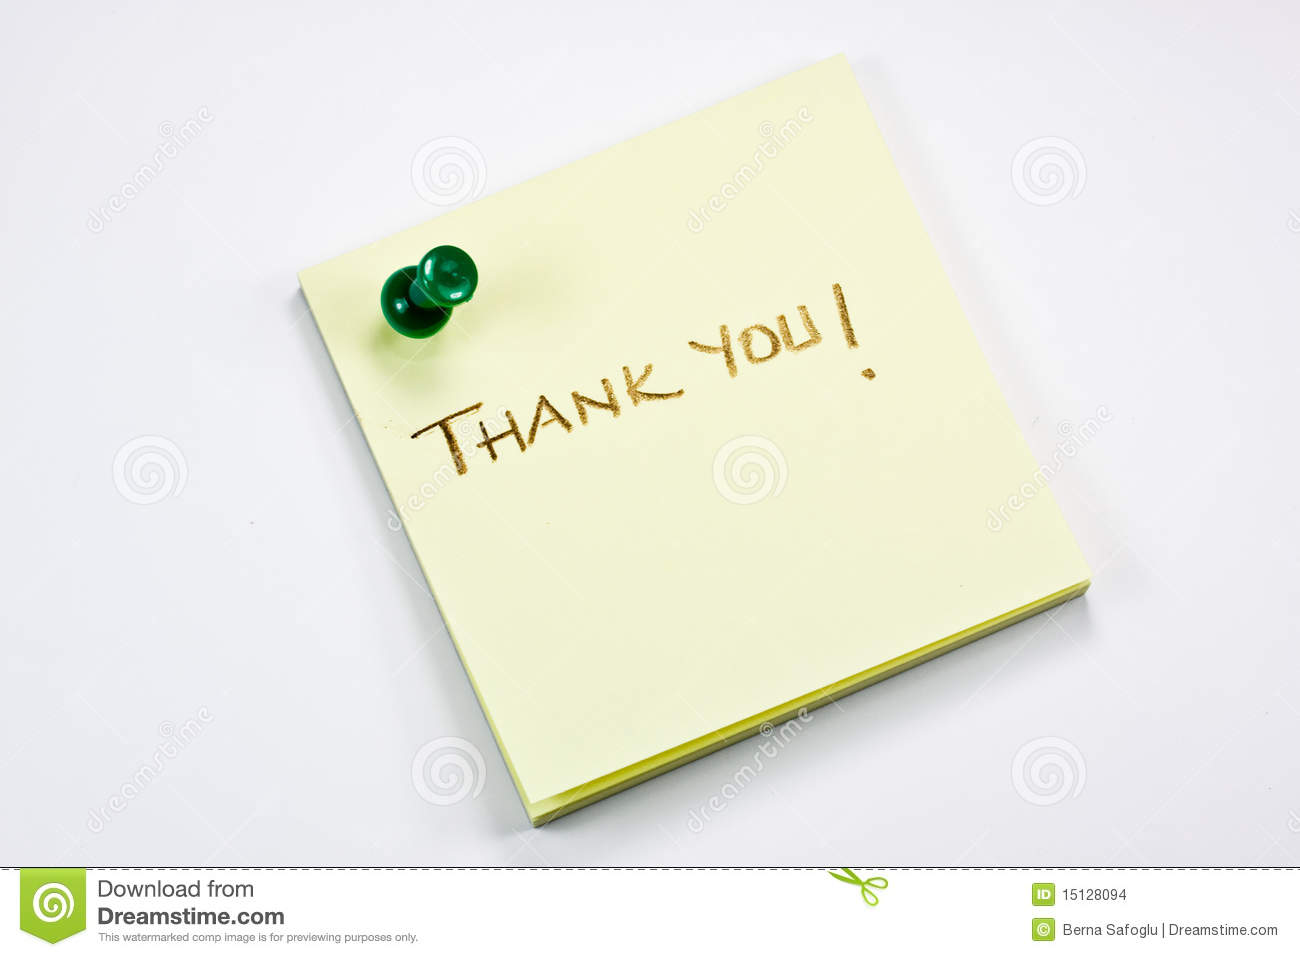 Thank you note for stock options